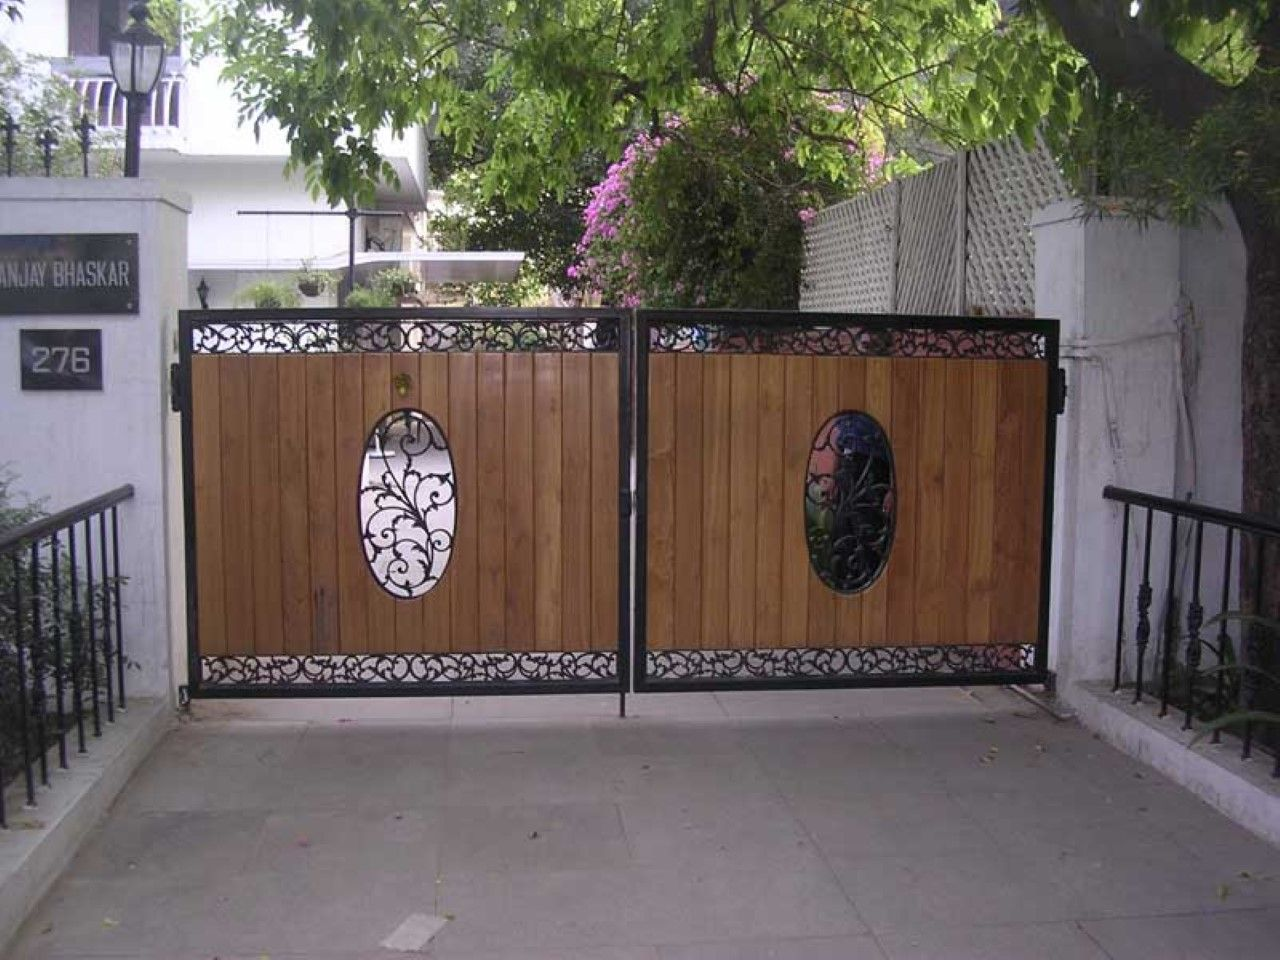 Gate Design Ideas lovable design gate wallpaper 2016 and main gate designs ideas and tips experts decoration with pics Gate Designs To Enhance Your House Security And Beauty Horrible Home